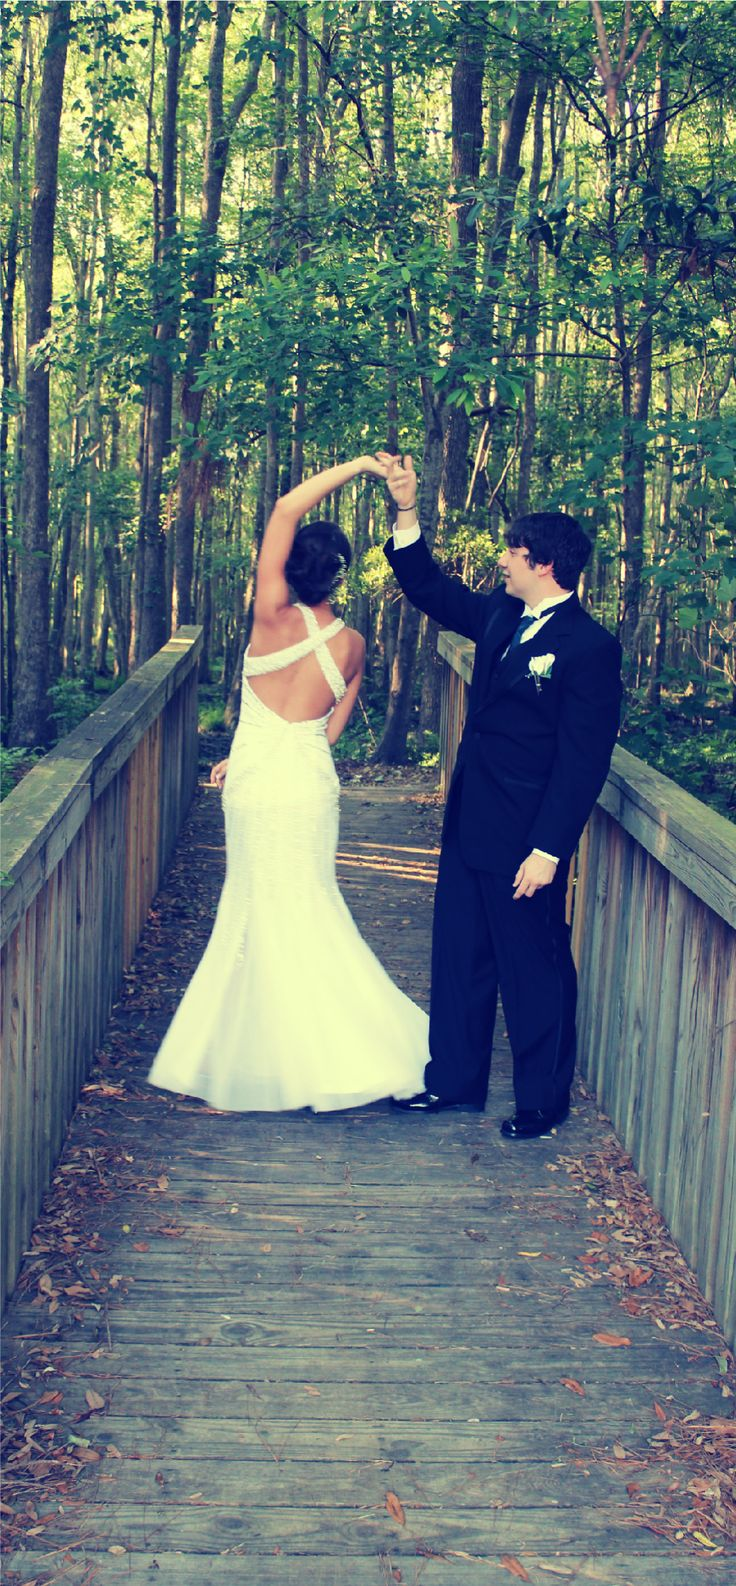 This may be a prom picture, but I love the idea for a wedding picture! So sweet!